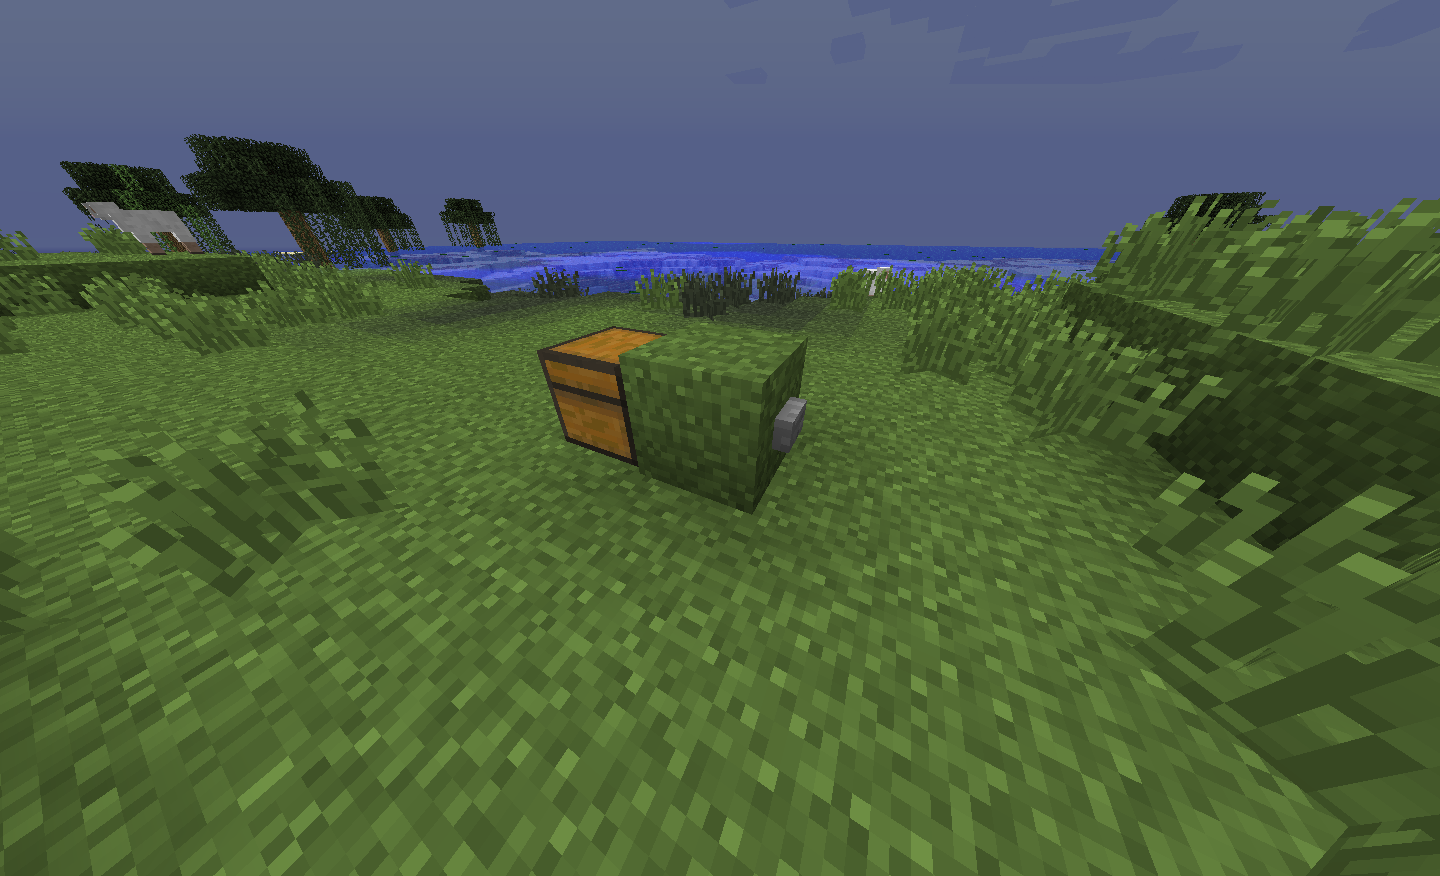 Image showing a button on a block behind a chest.